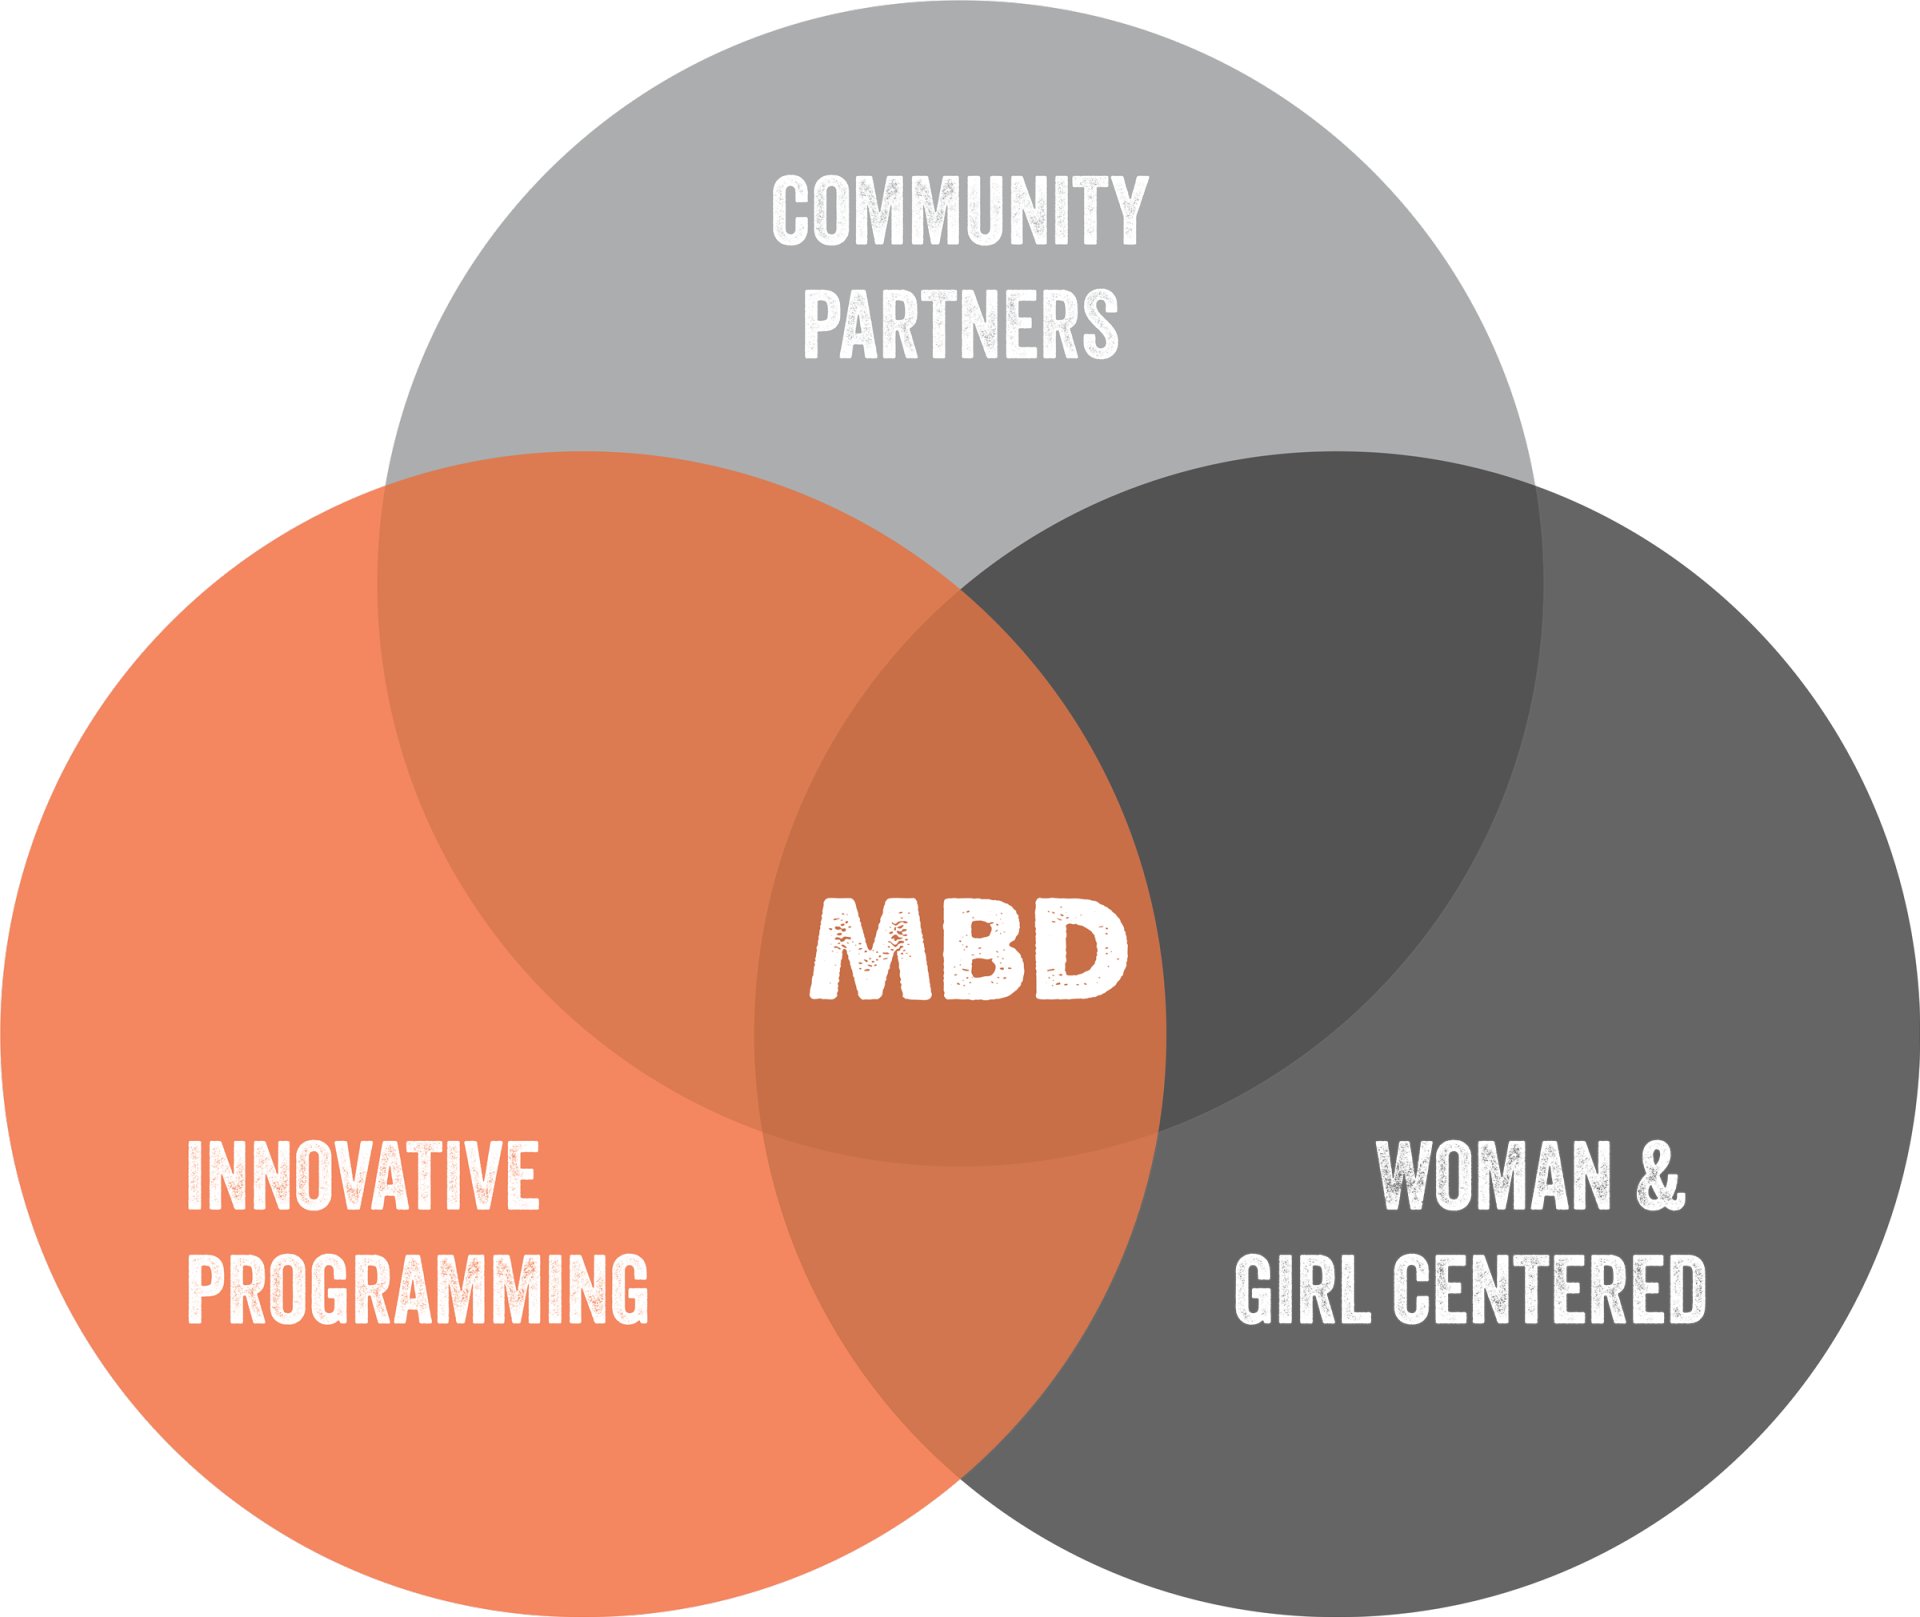 Infograph: Community partners, woman & girl centered, and innovative programming all overlap to MBD